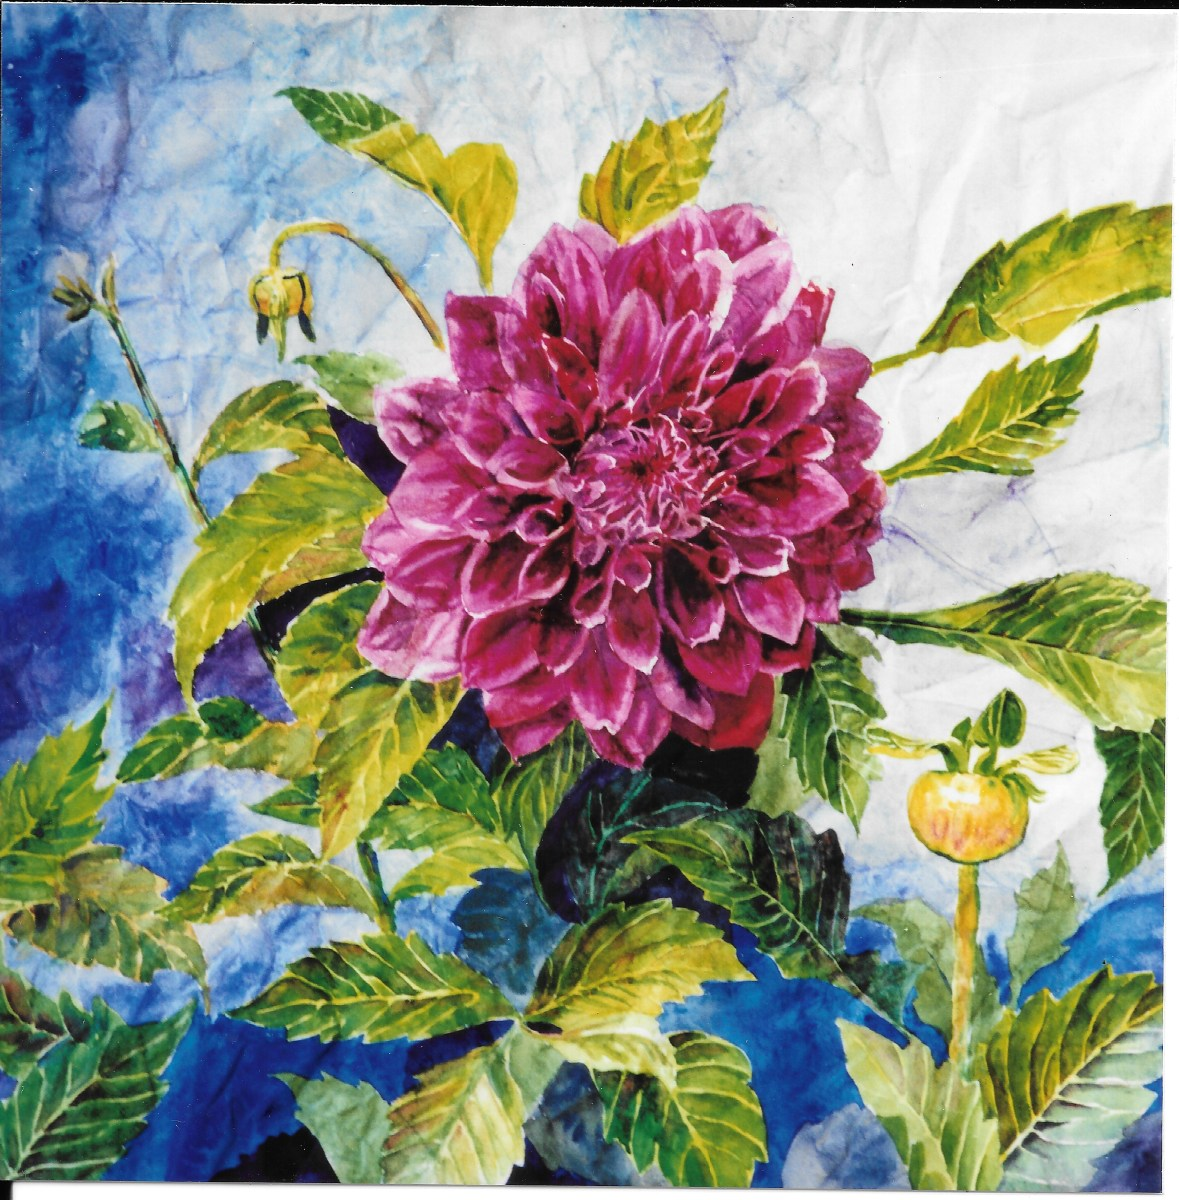 Watercolor Dahlia on wrinkled paper